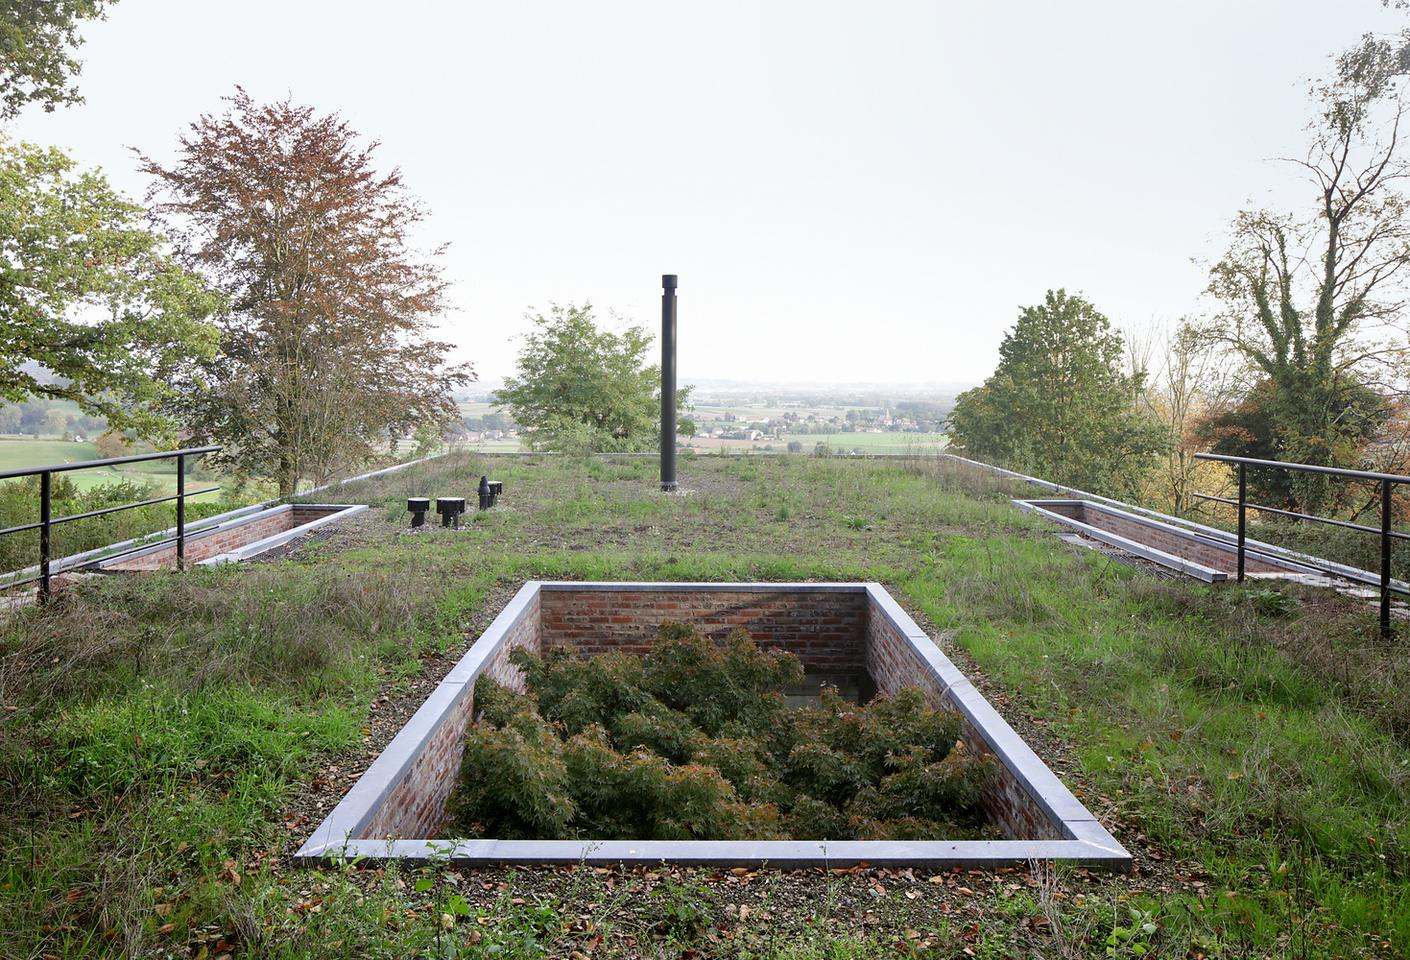 Dutch architectural firm Studio Okami has recently completed a green roof home that vanishes into its natural landscape setting